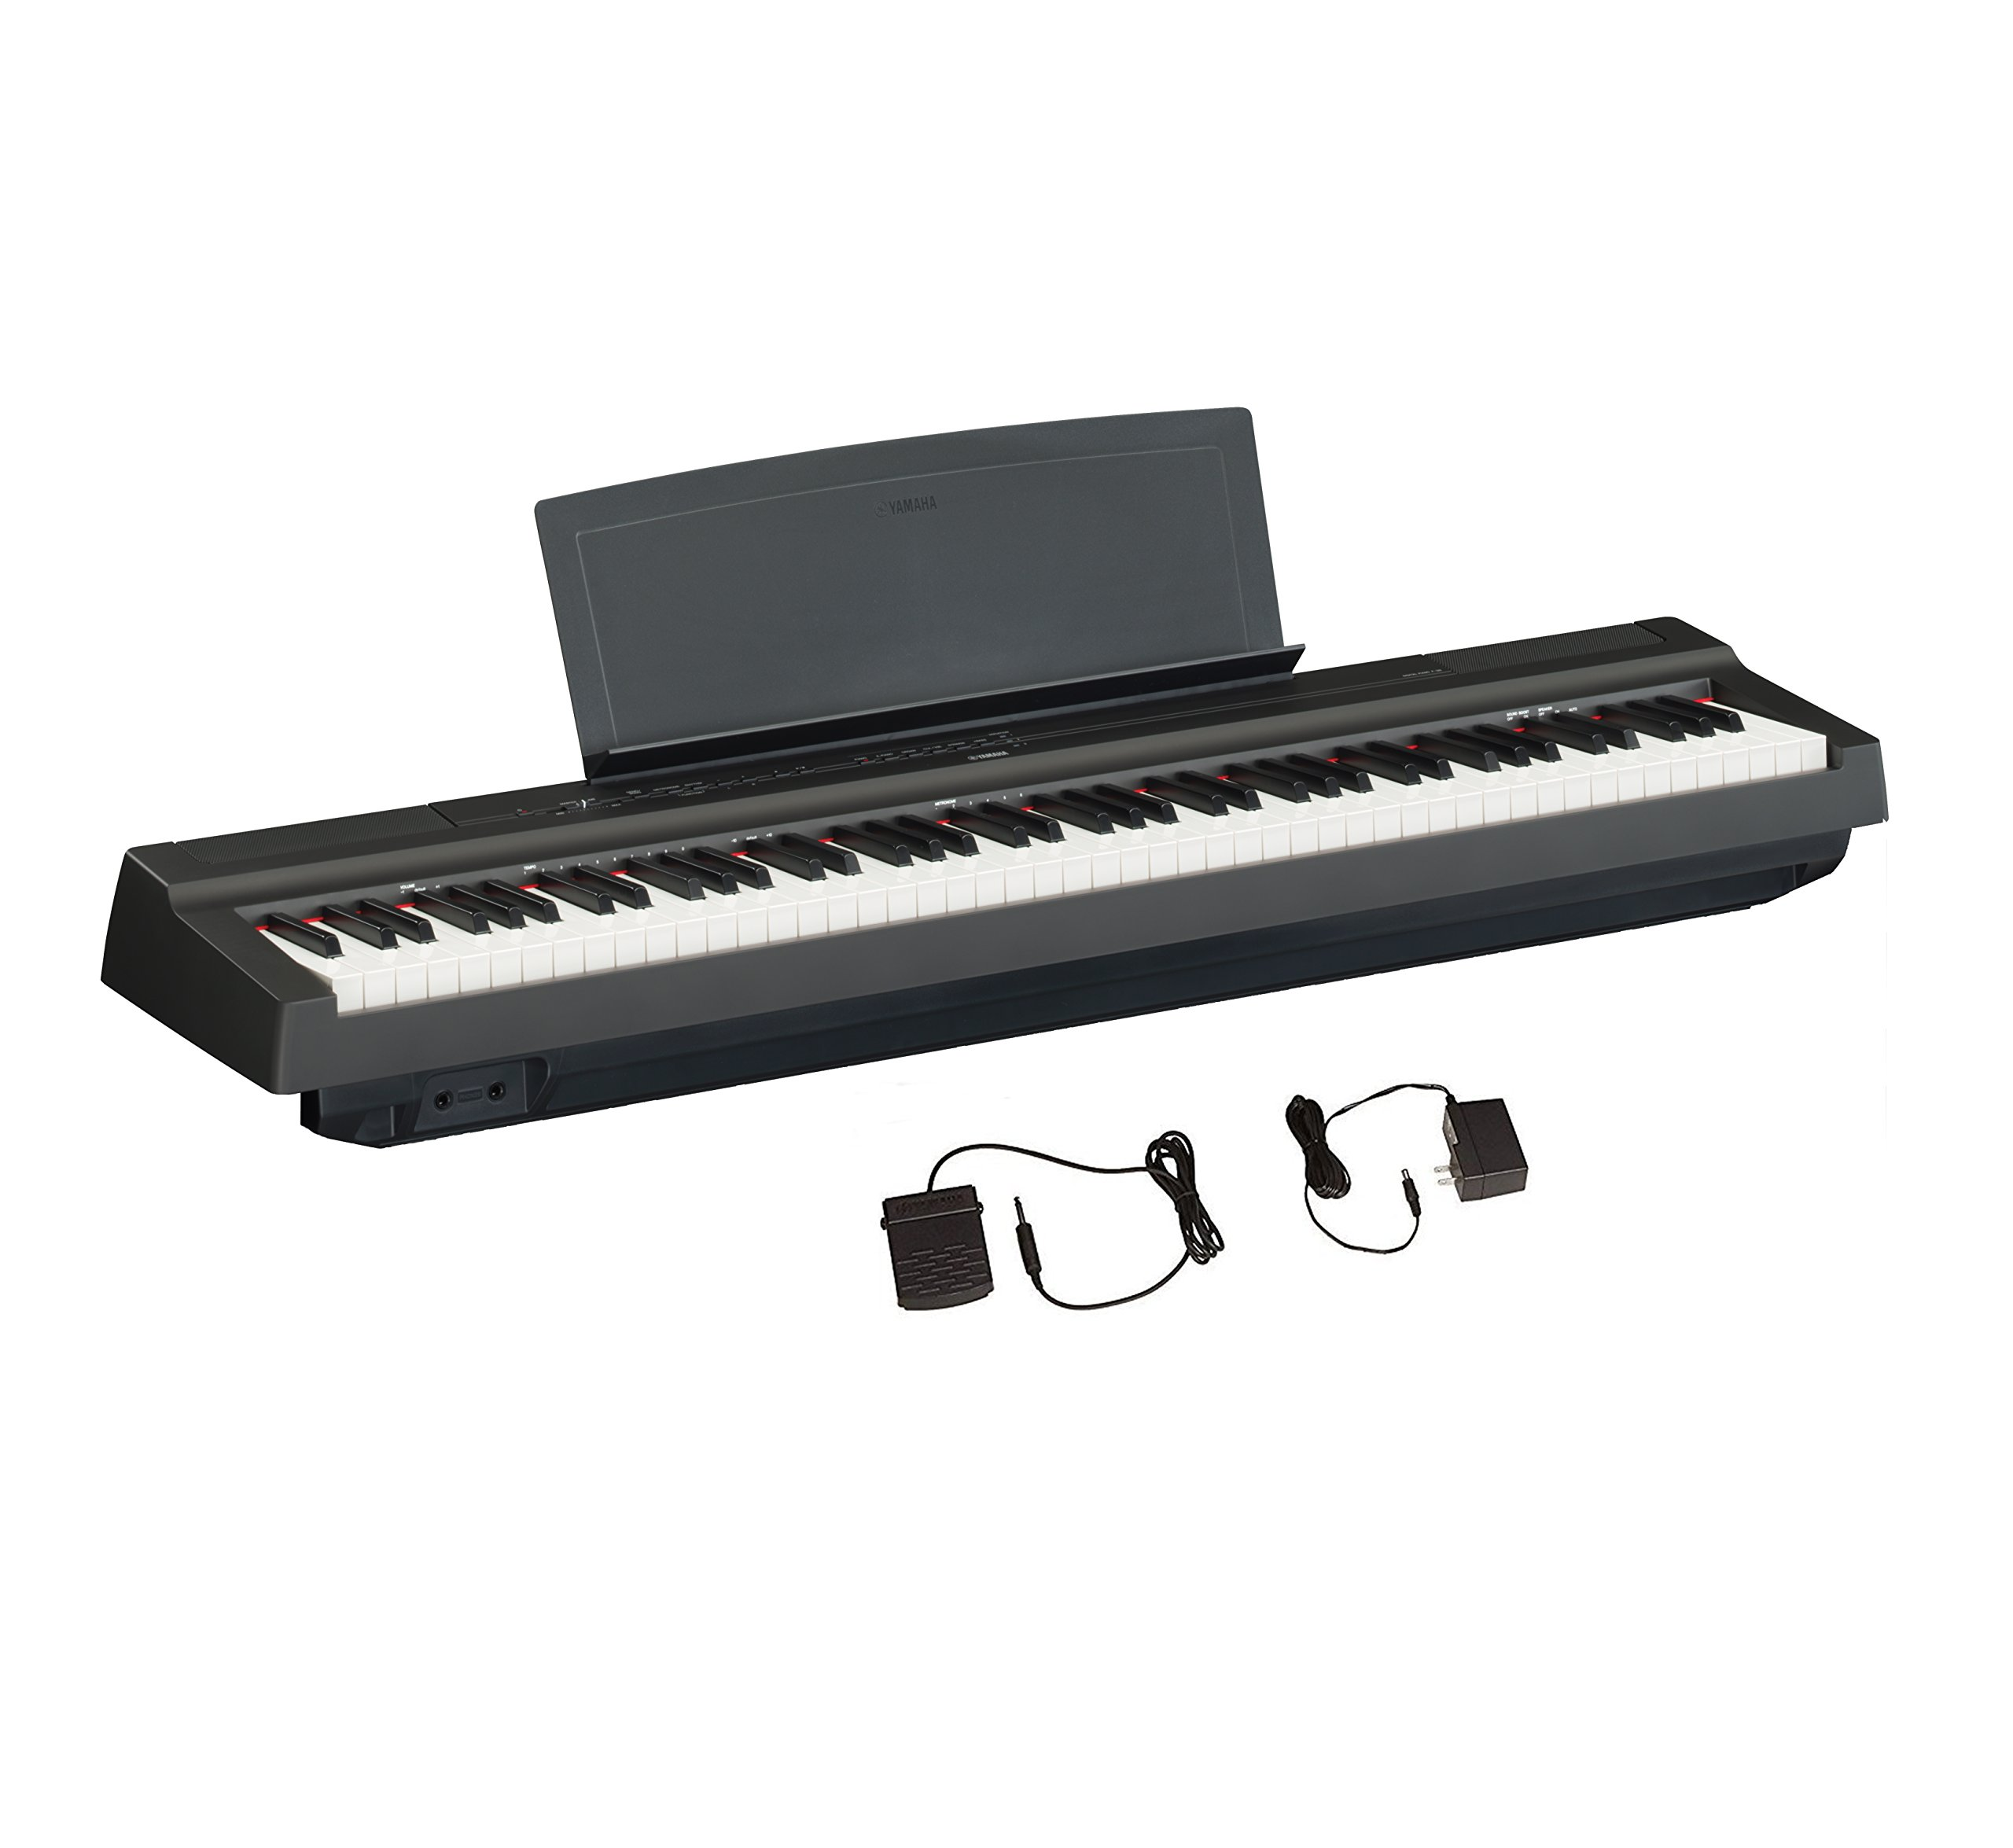 Yamaha P125 88-Key Weighted Action Digital Piano with Power Supply and Sustain Pedal, Black by YAMAHA (Image #1)